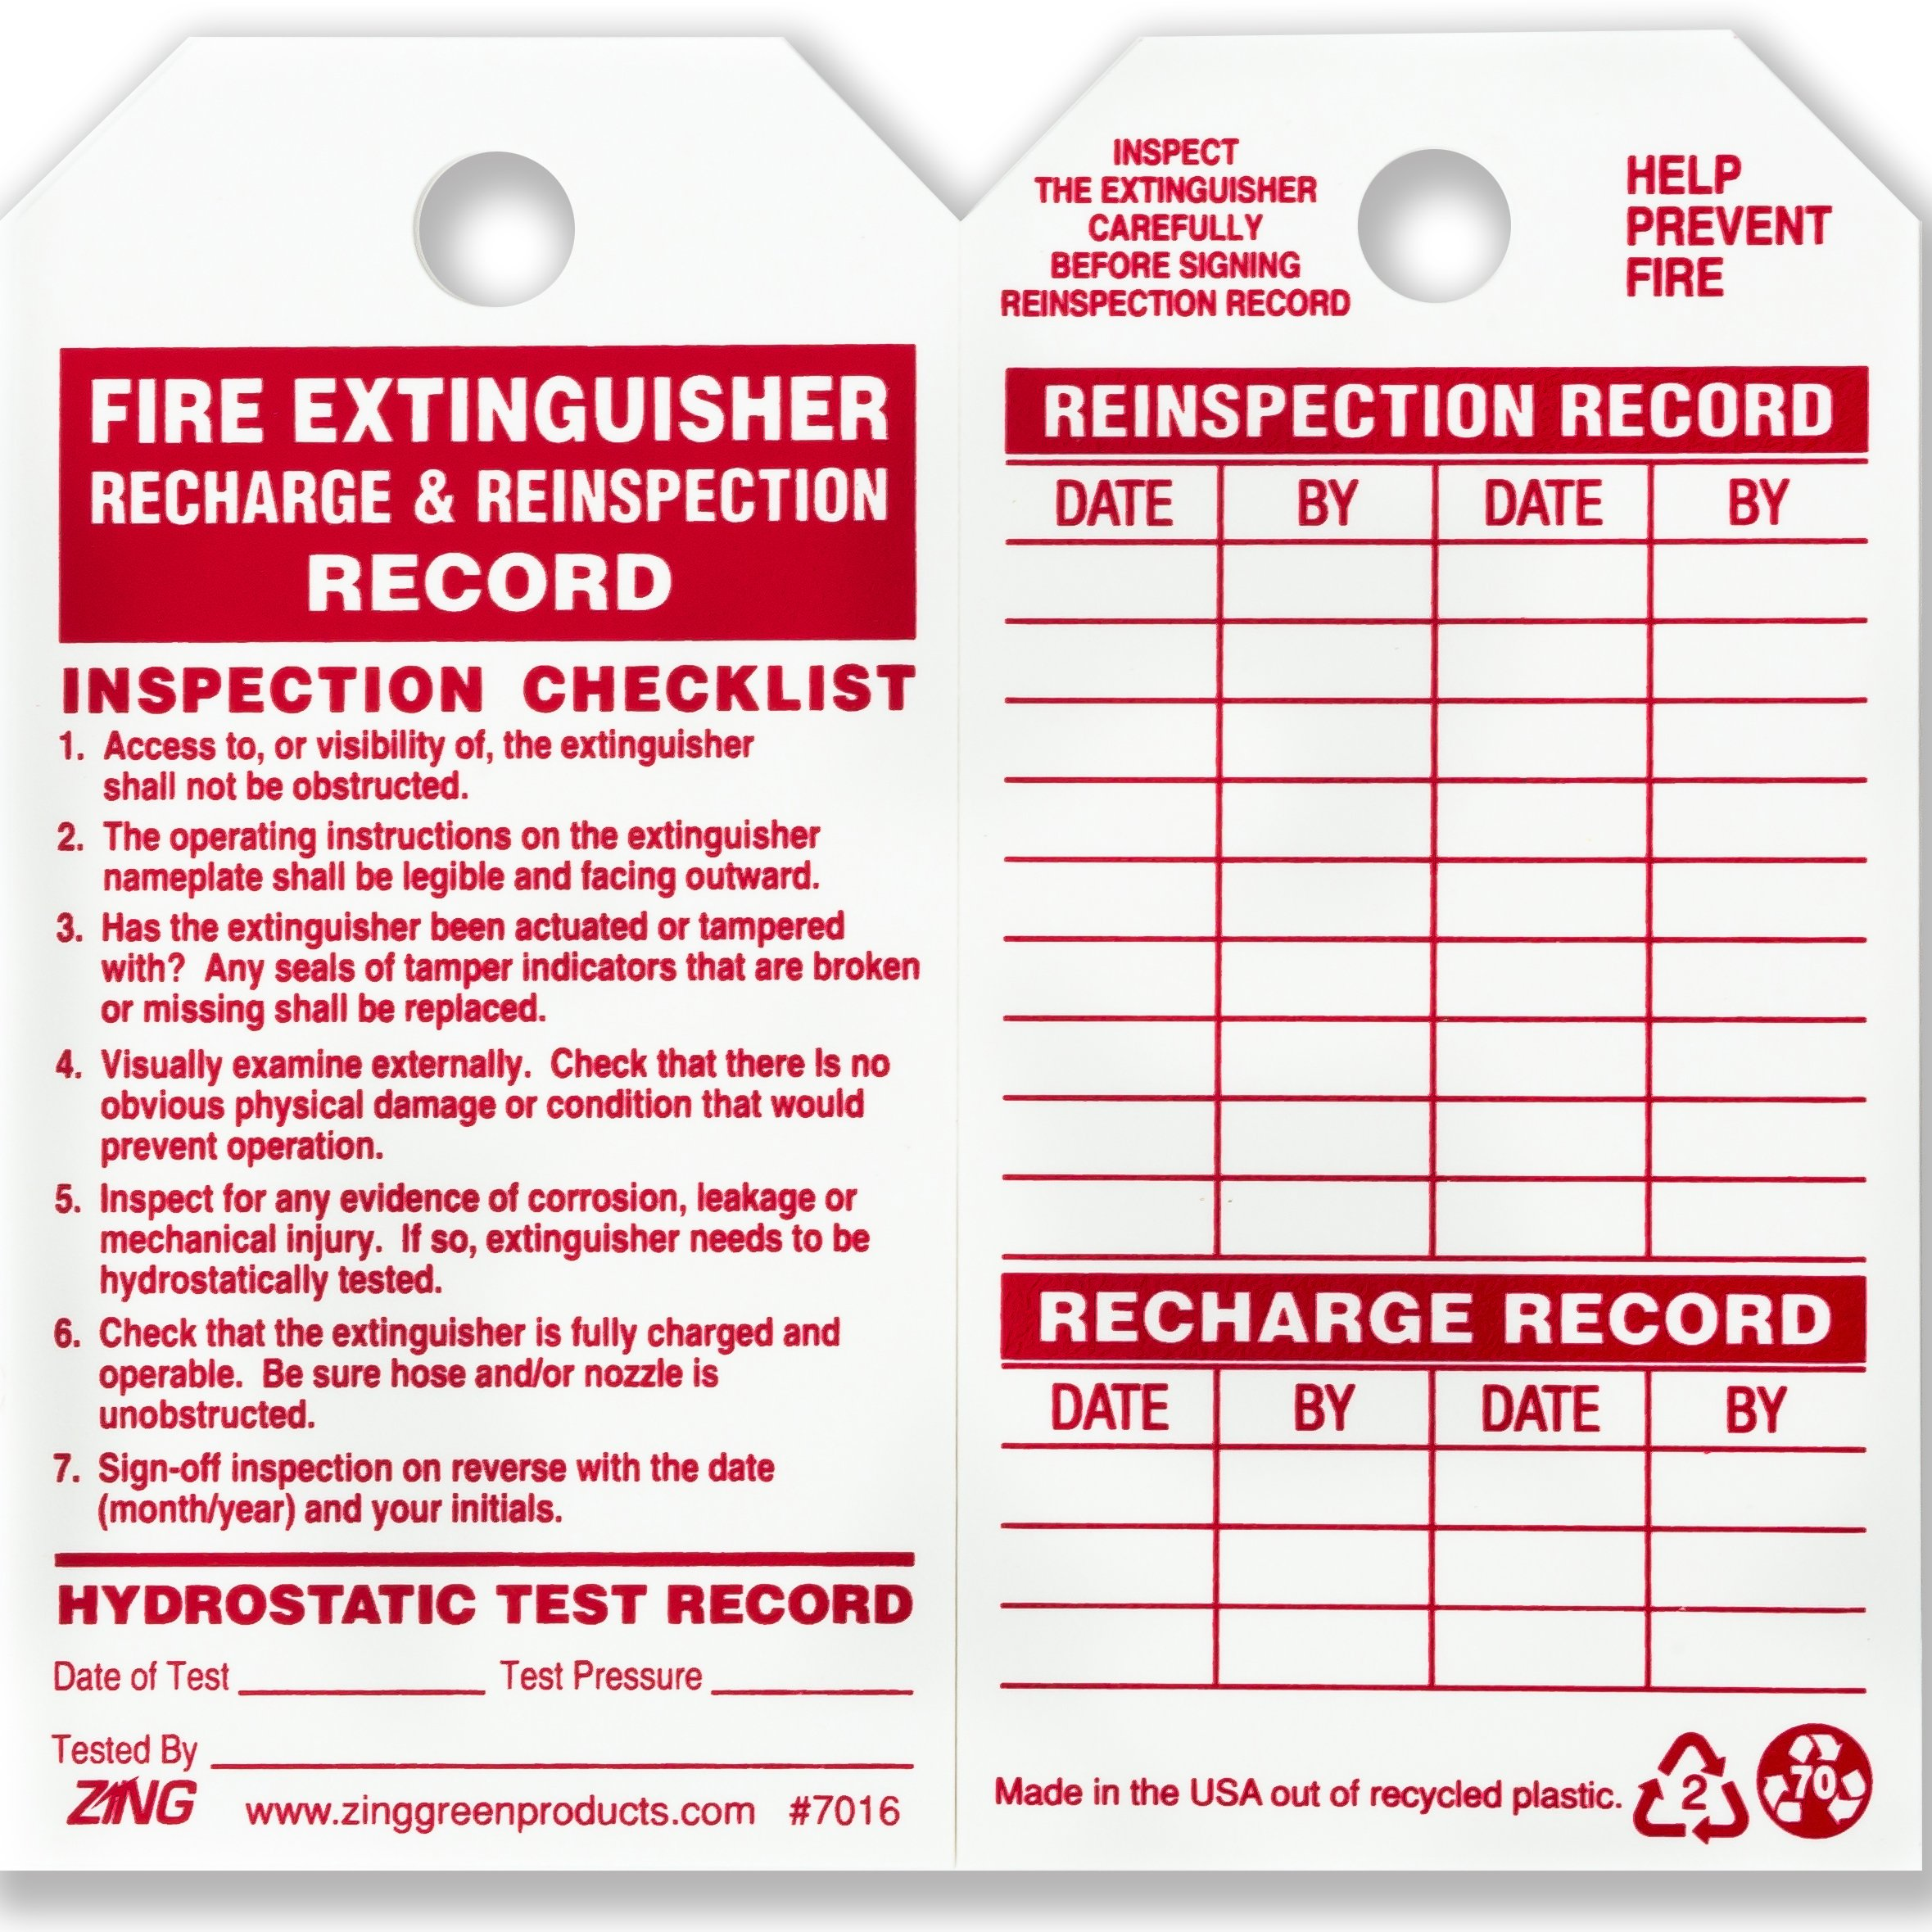 ZING 7016 Eco Safety Tag, Fire Extinguisher, 5.75Hx3W, 10 Pack